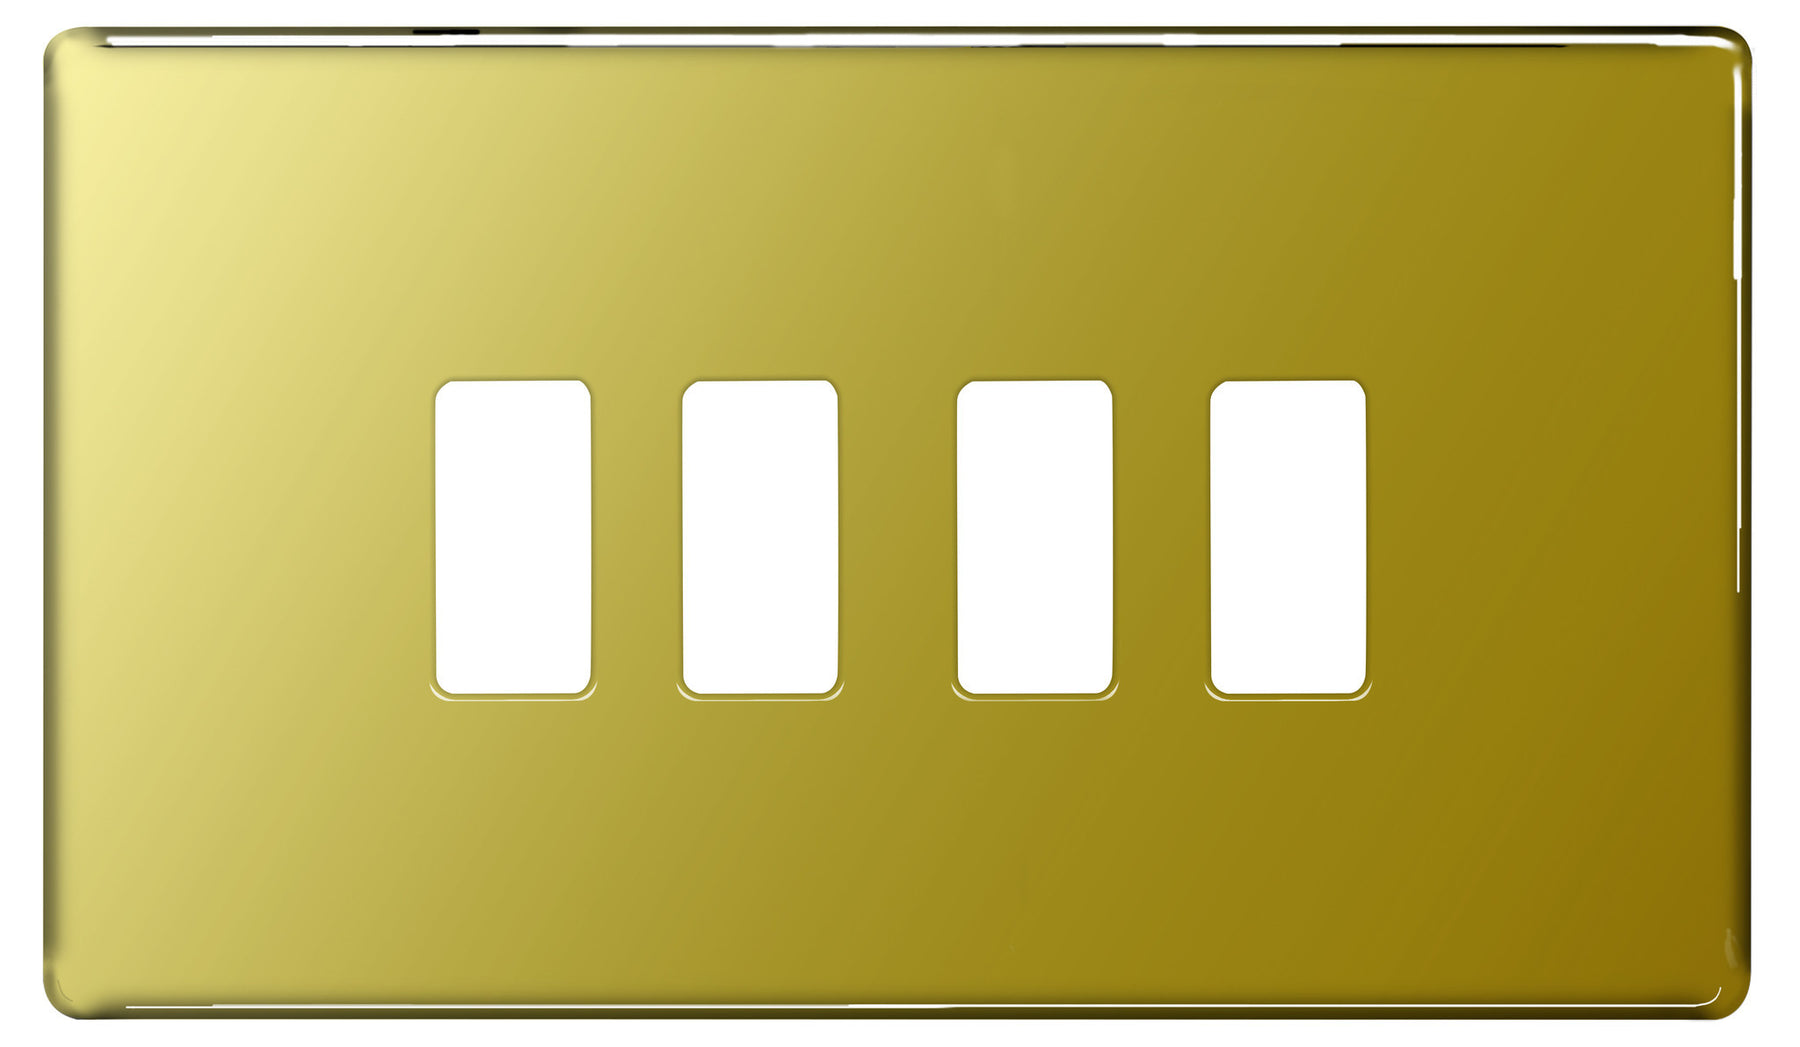 BG Nexus GFPB4 Grid Polished Brass SCREWLESS 4 Gang Front Plate - BG - sparks-warehouse